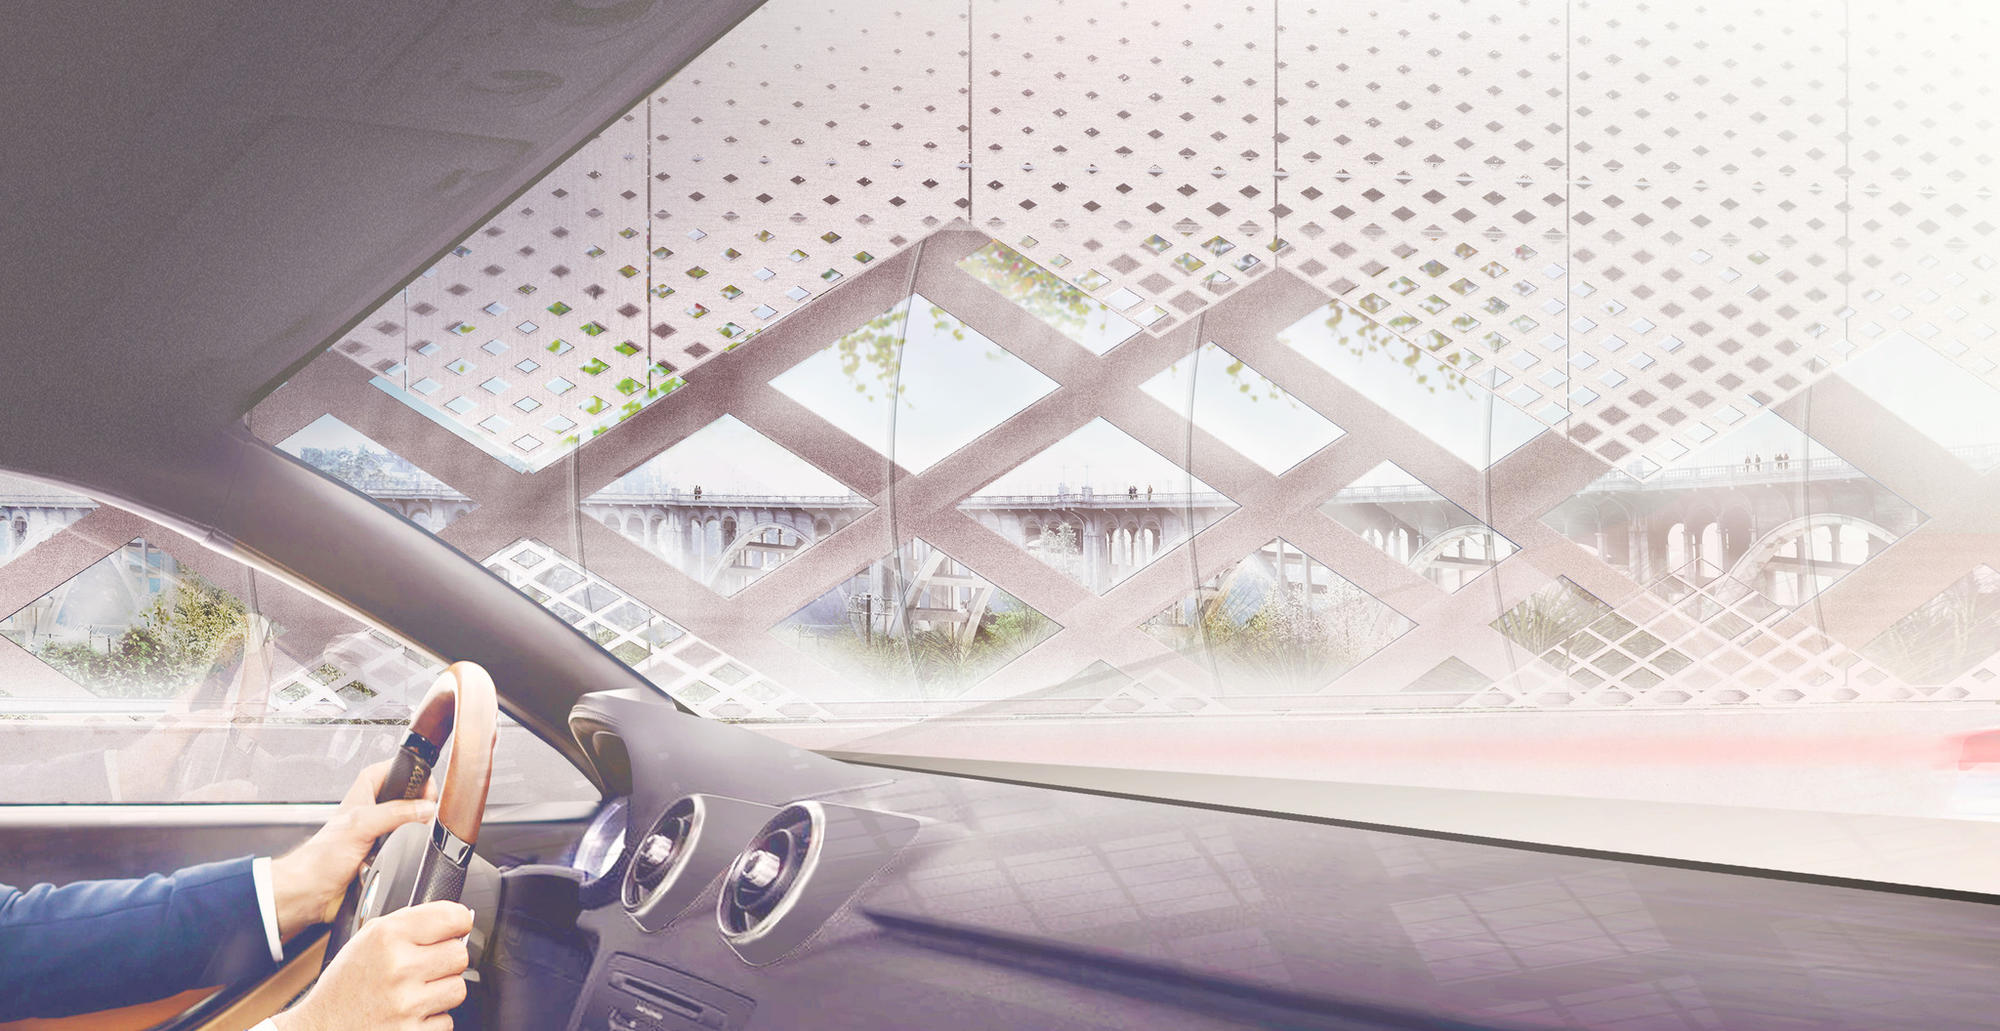 A rendering view from a car interior of the 134 Arroyo Seco Bridge project.